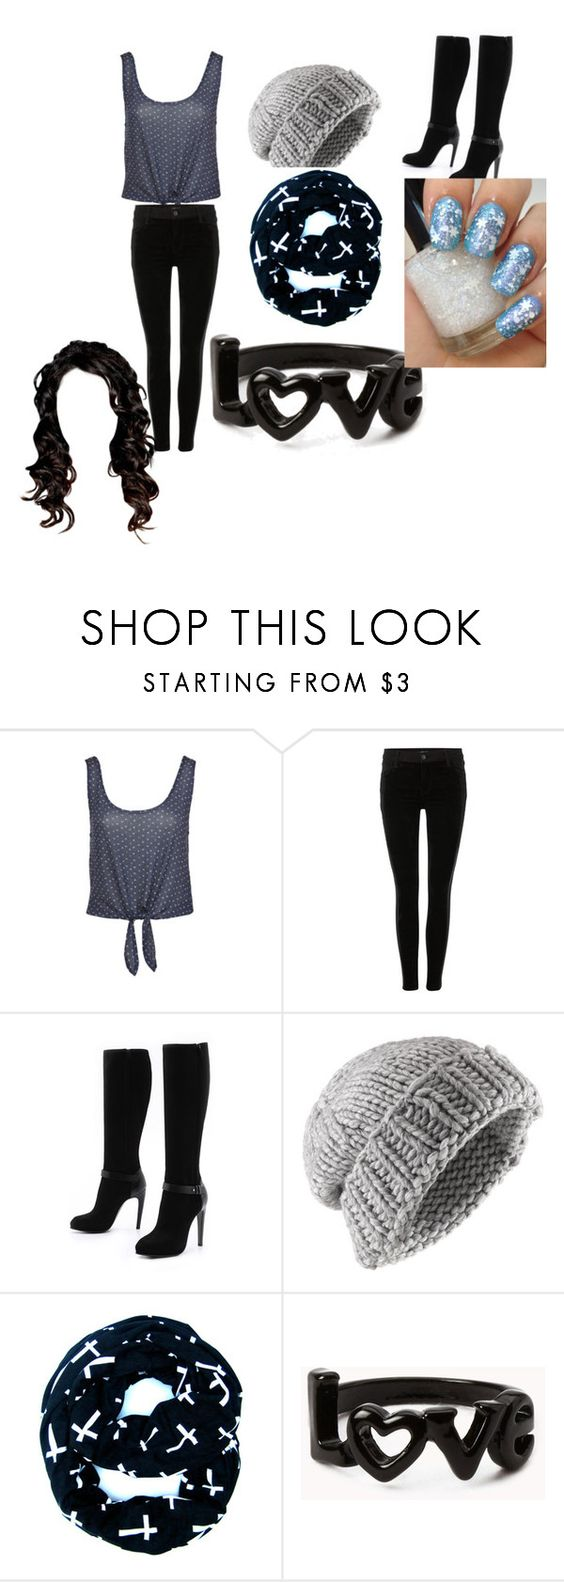 """""""Abi's creat"""" by ppppets ❤ liked on Polyvore featuring J Brand, COSTUME NATIONAL, Jigsaw, Forever 21 and INDIE HAIR"""